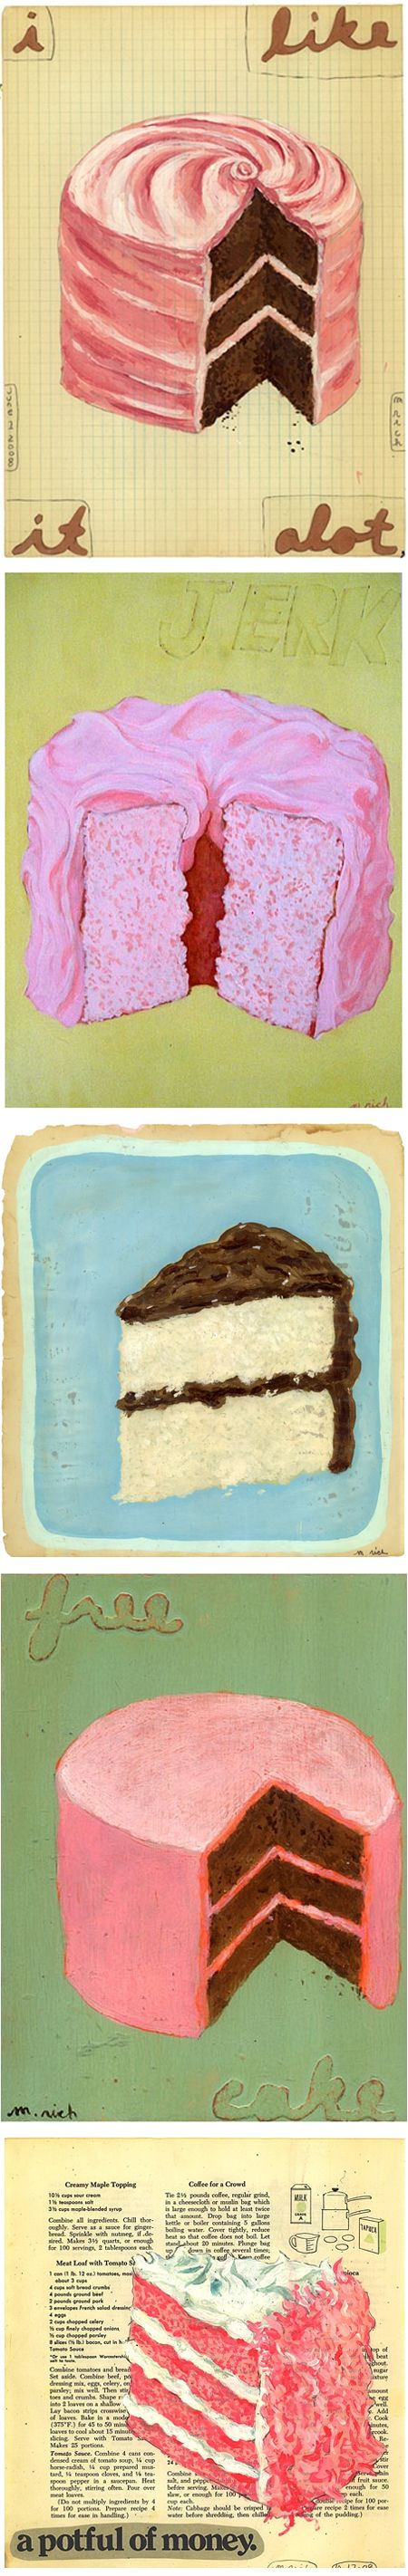 The Jealous Curator » Blog Archive » i'm jealous of martha rich's cake